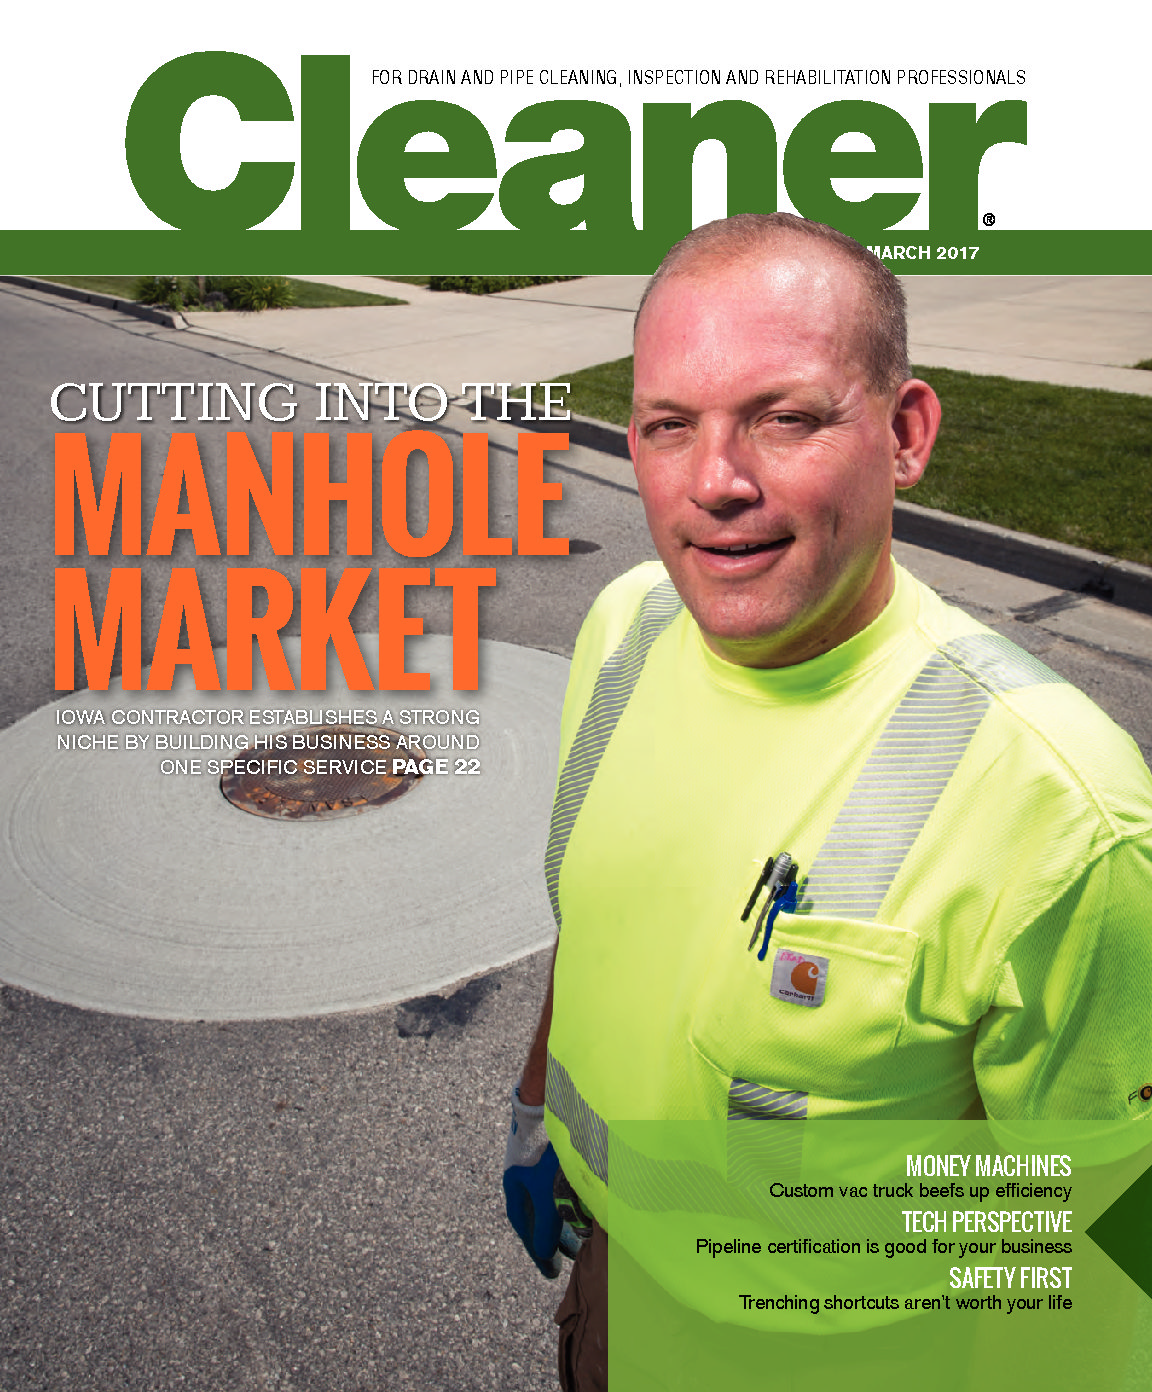 The Mr. Manhole method of manhole repair and rehabilitation was featured in the March 2017 edition of Clean magazine